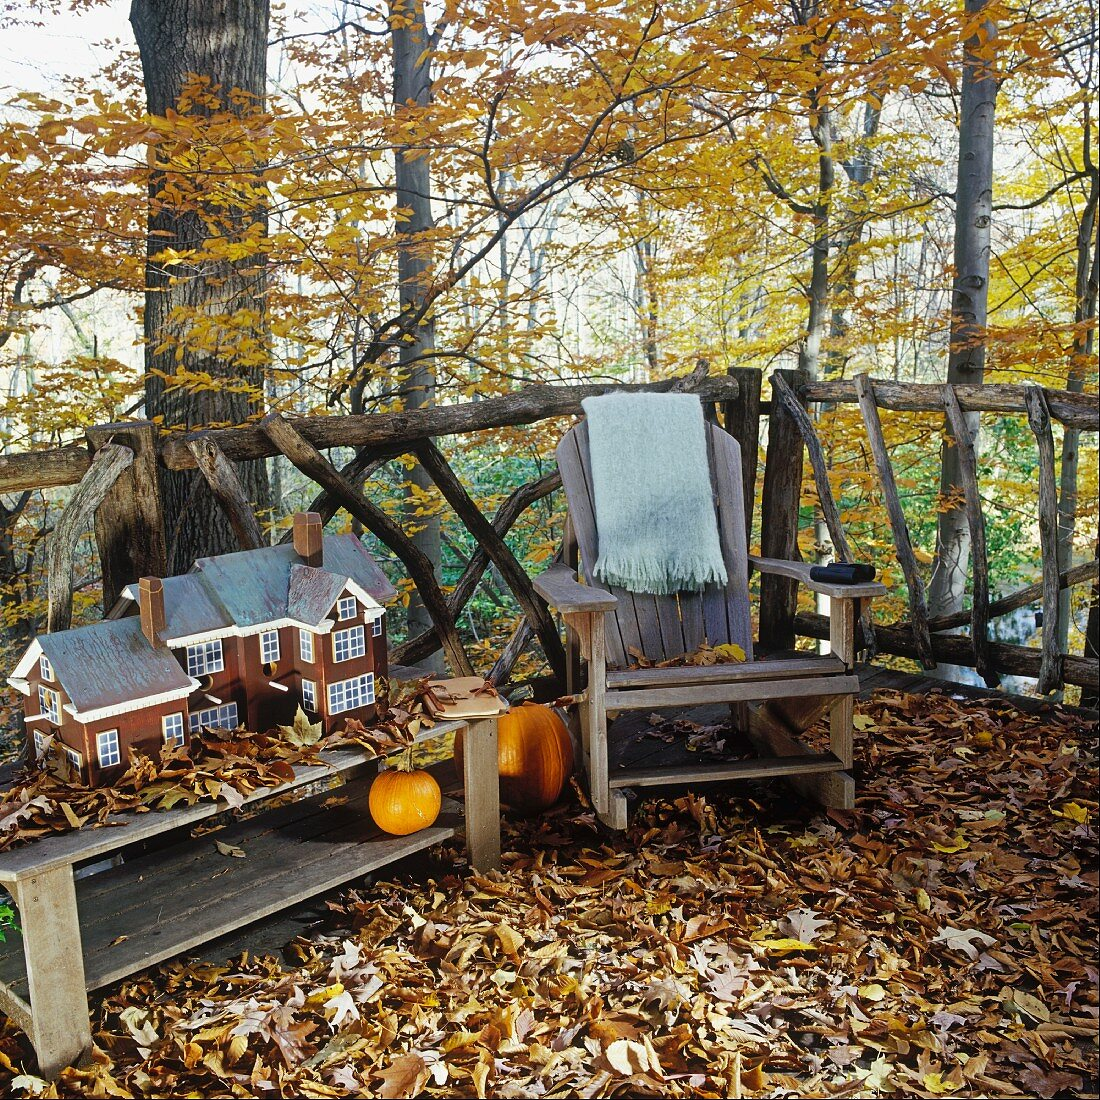 Autumn terrace carpeted with leaves with rustic armchair and model of house on wooden table